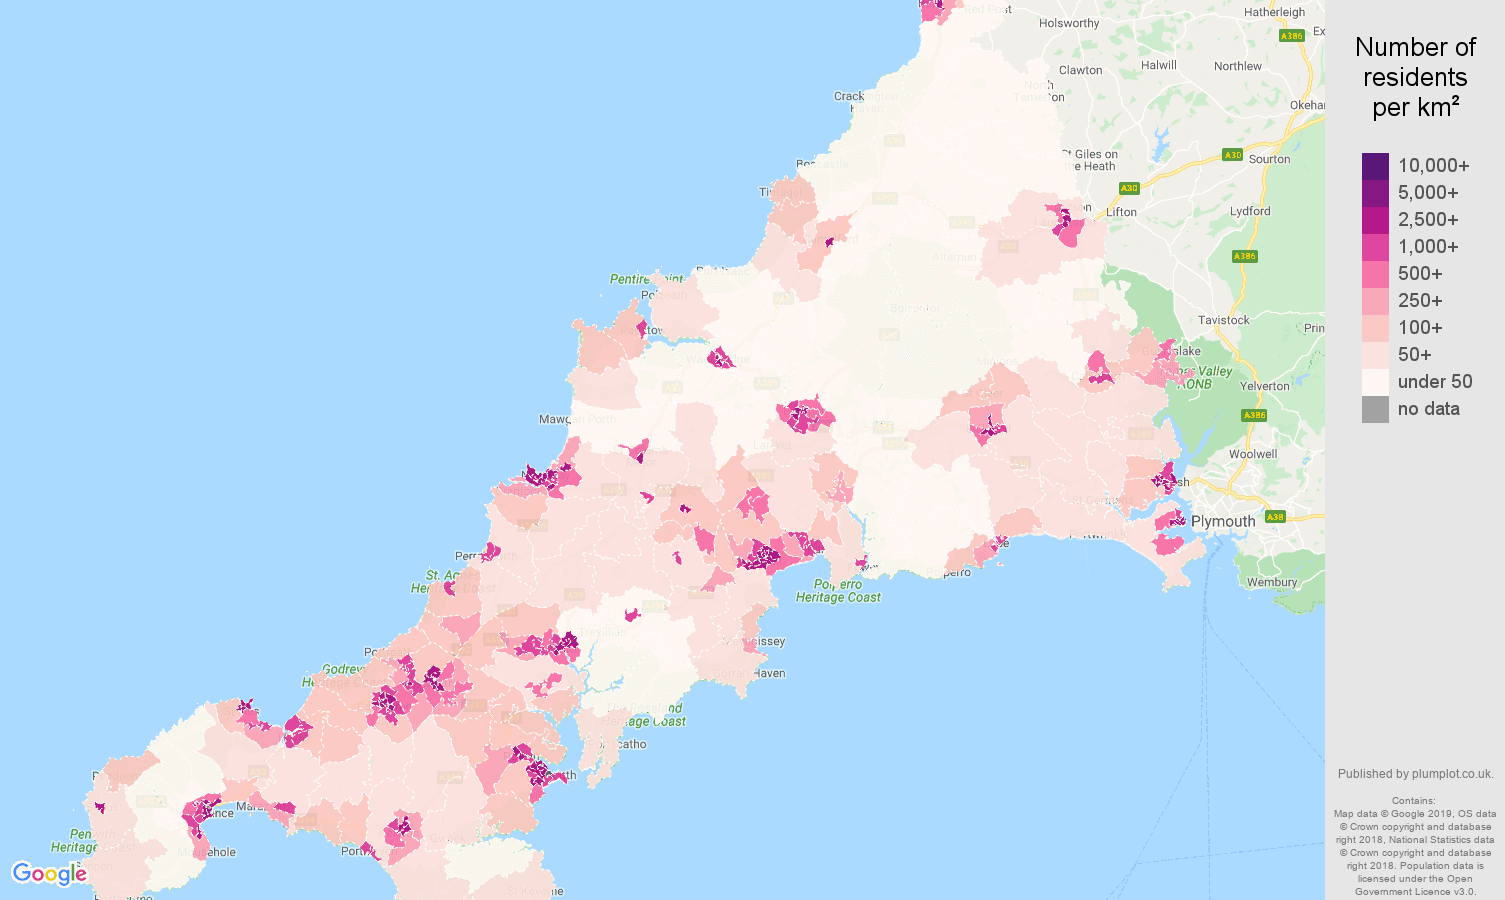 Cornwall population density map